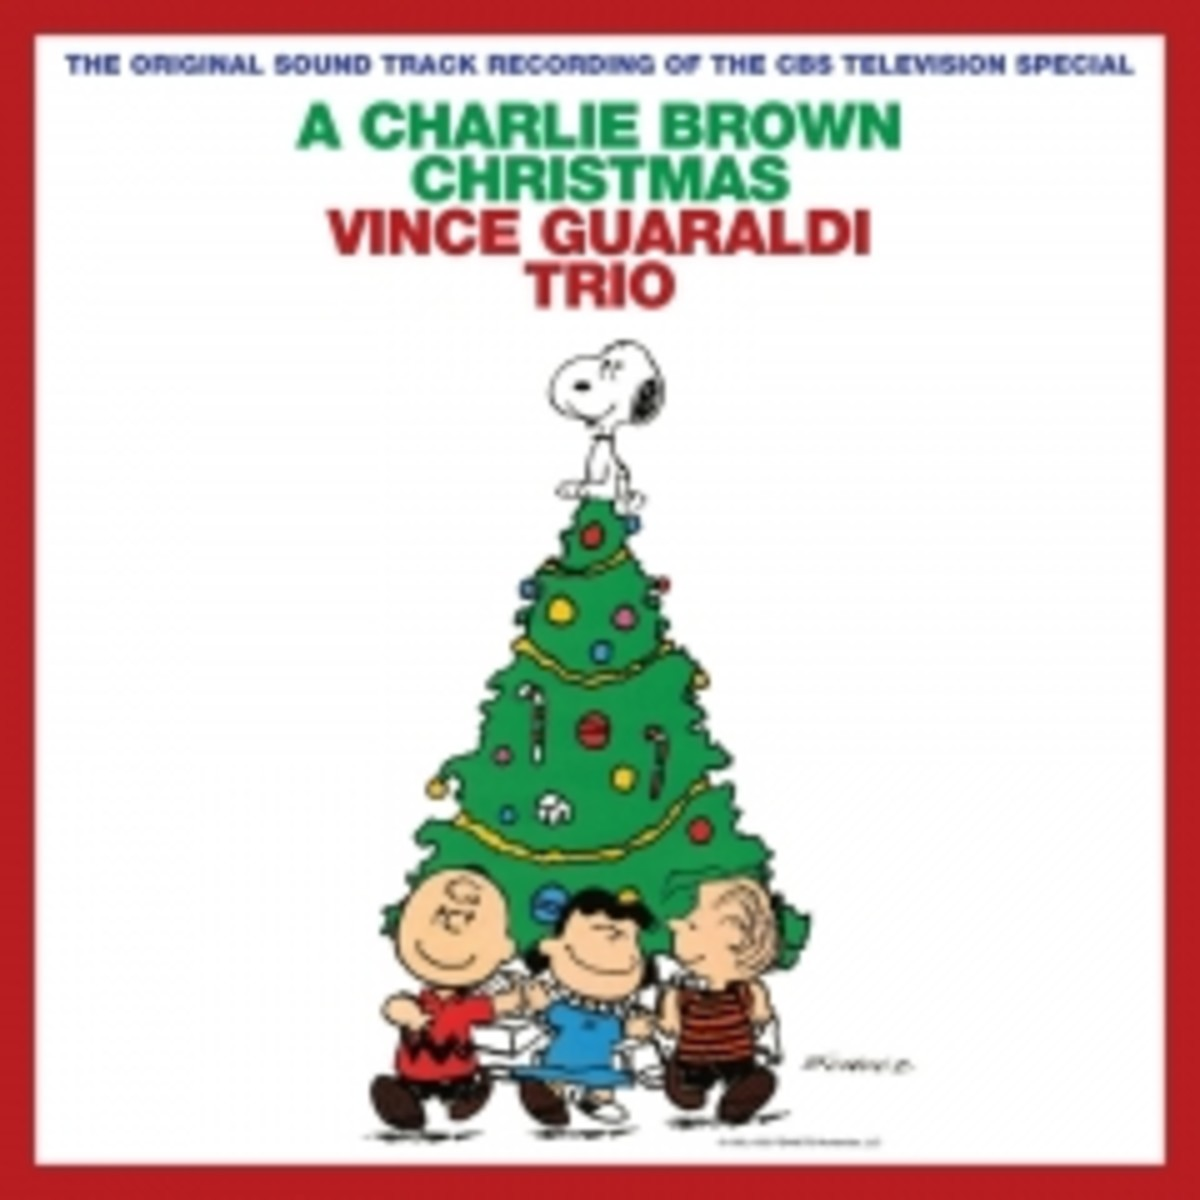 A Charlie Brown Christmas by The Vince Guaraldi Trio